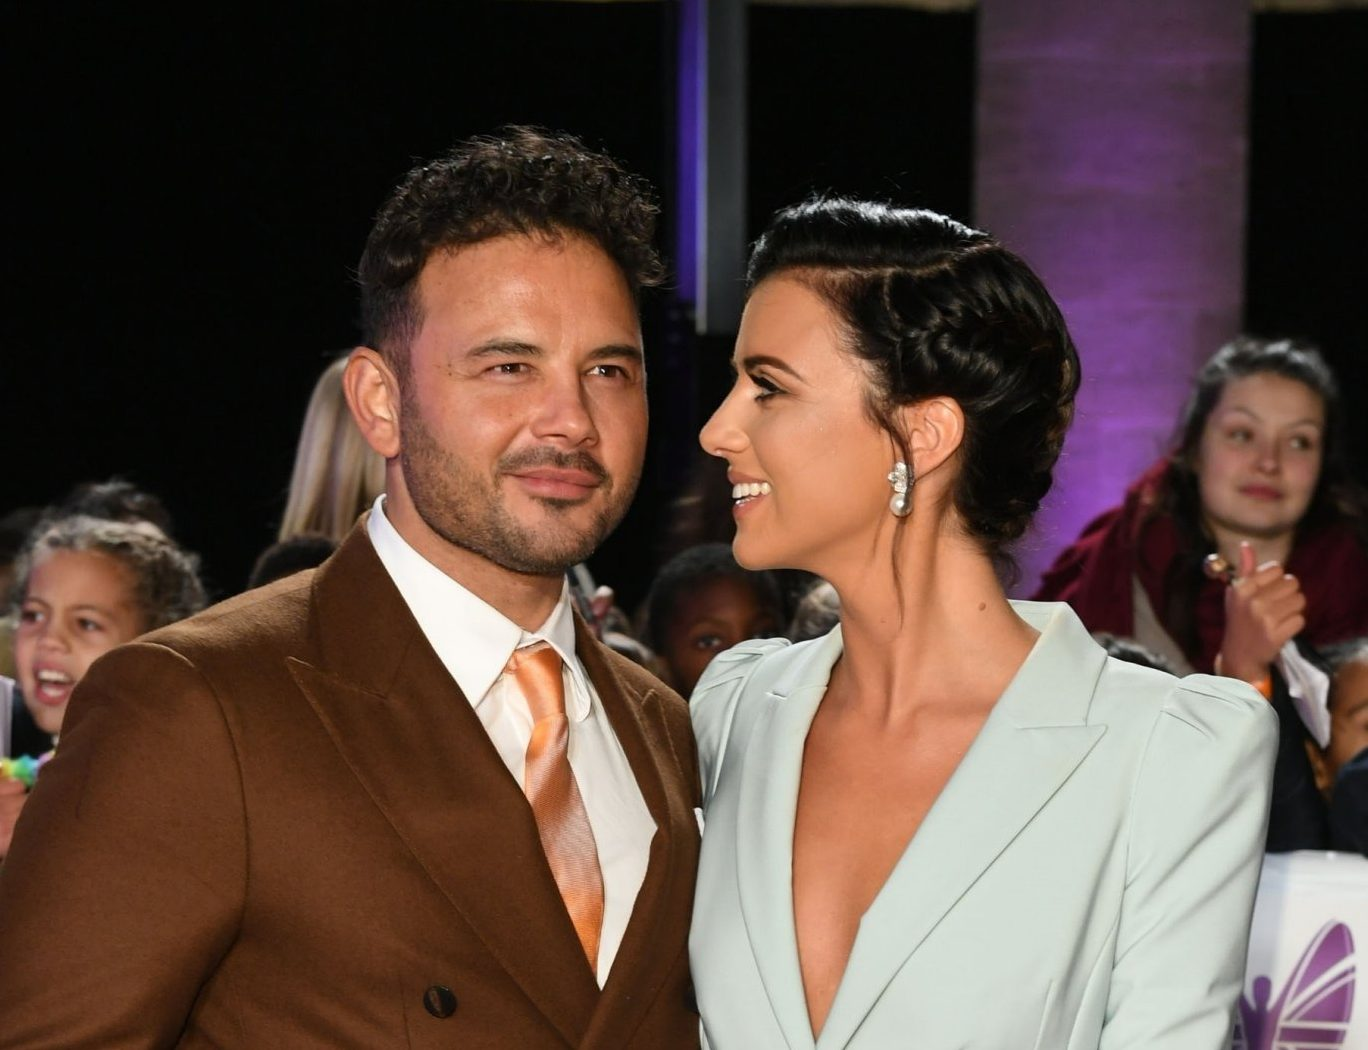 BGUK_1385741 - London, UNITED KINGDOM - The 2018 Pride Of Britain Awards held at the Grosvenor House Hotel, Park Lane, London. Pictured: Ryan Thomas - Lucy Mecklenburgh BACKGRID UK 29 OCTOBER 2018 BYLINE MUST READ: TIMMSY / BACKGRID UK: +44 208 344 2007 / uksales@backgrid.com USA: +1 310 798 9111 / usasales@backgrid.com *UK Clients - Pictures Containing Children Please Pixelate Face Prior To Publication*